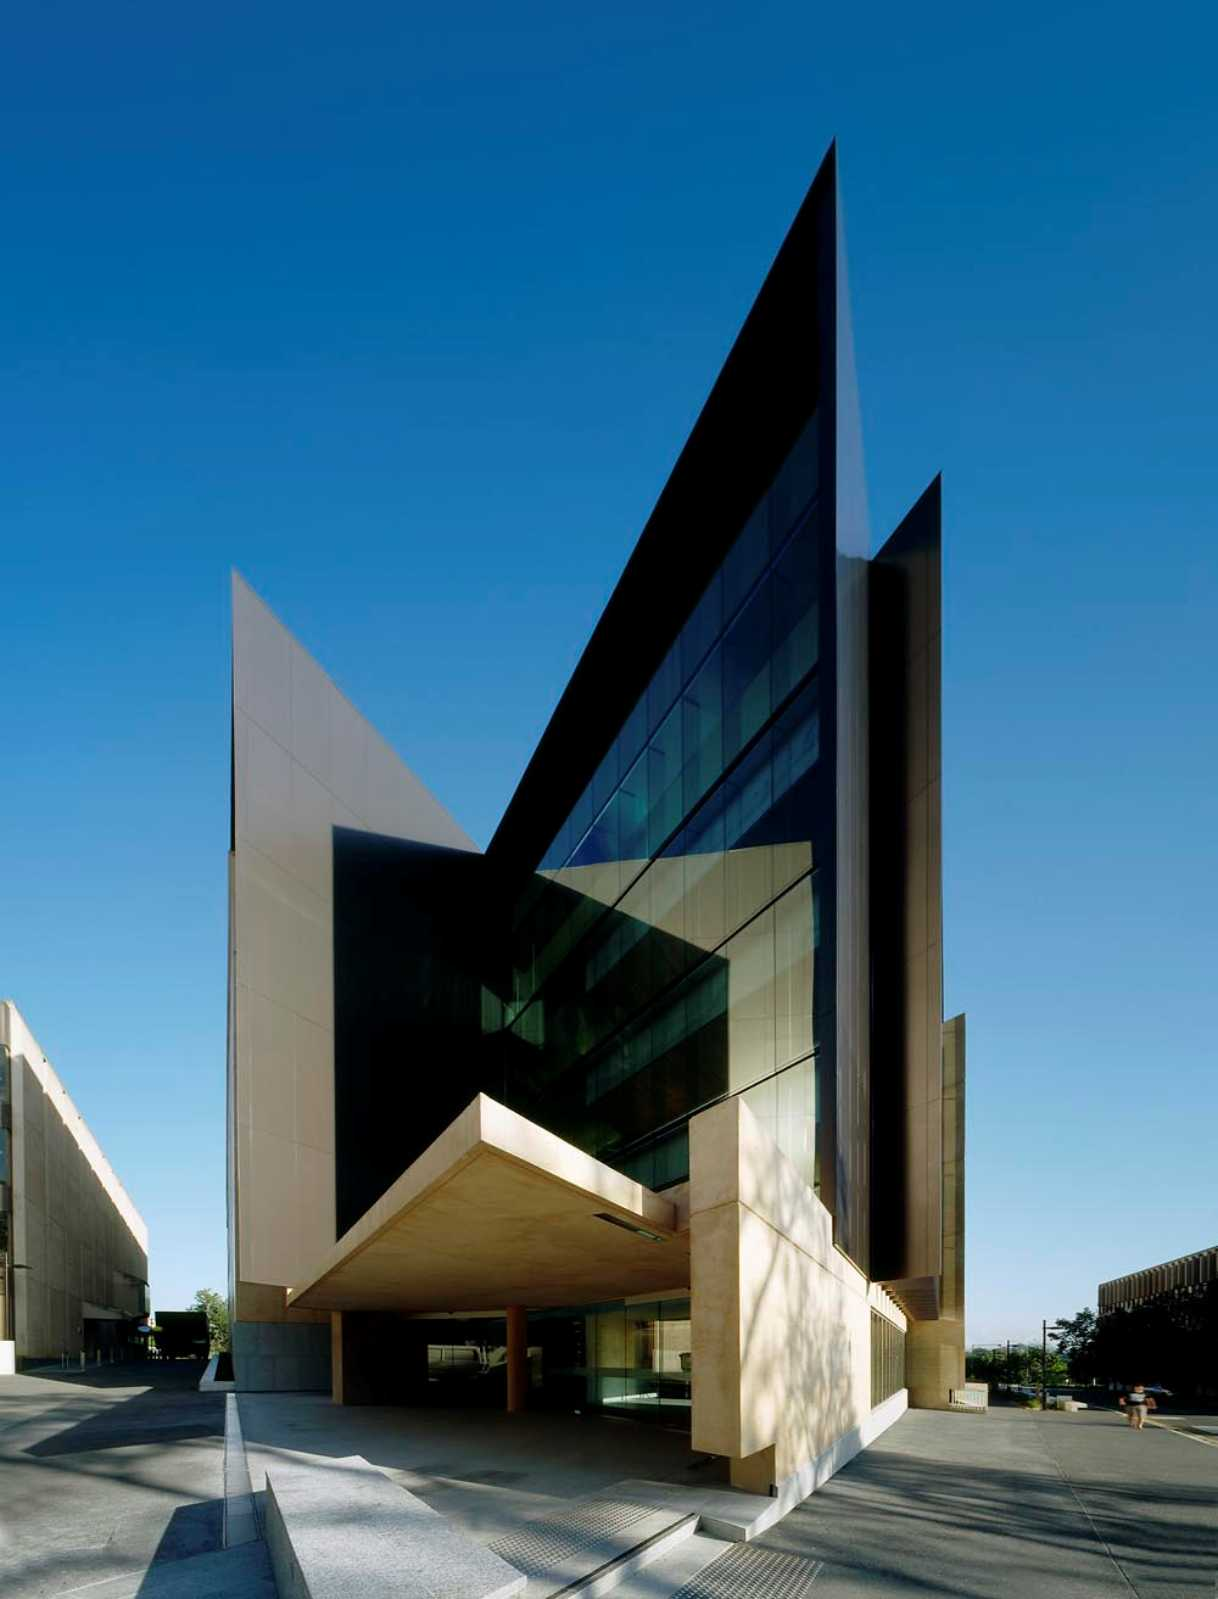 Sir llew edwards building by richard kirk architect for U of m architecture